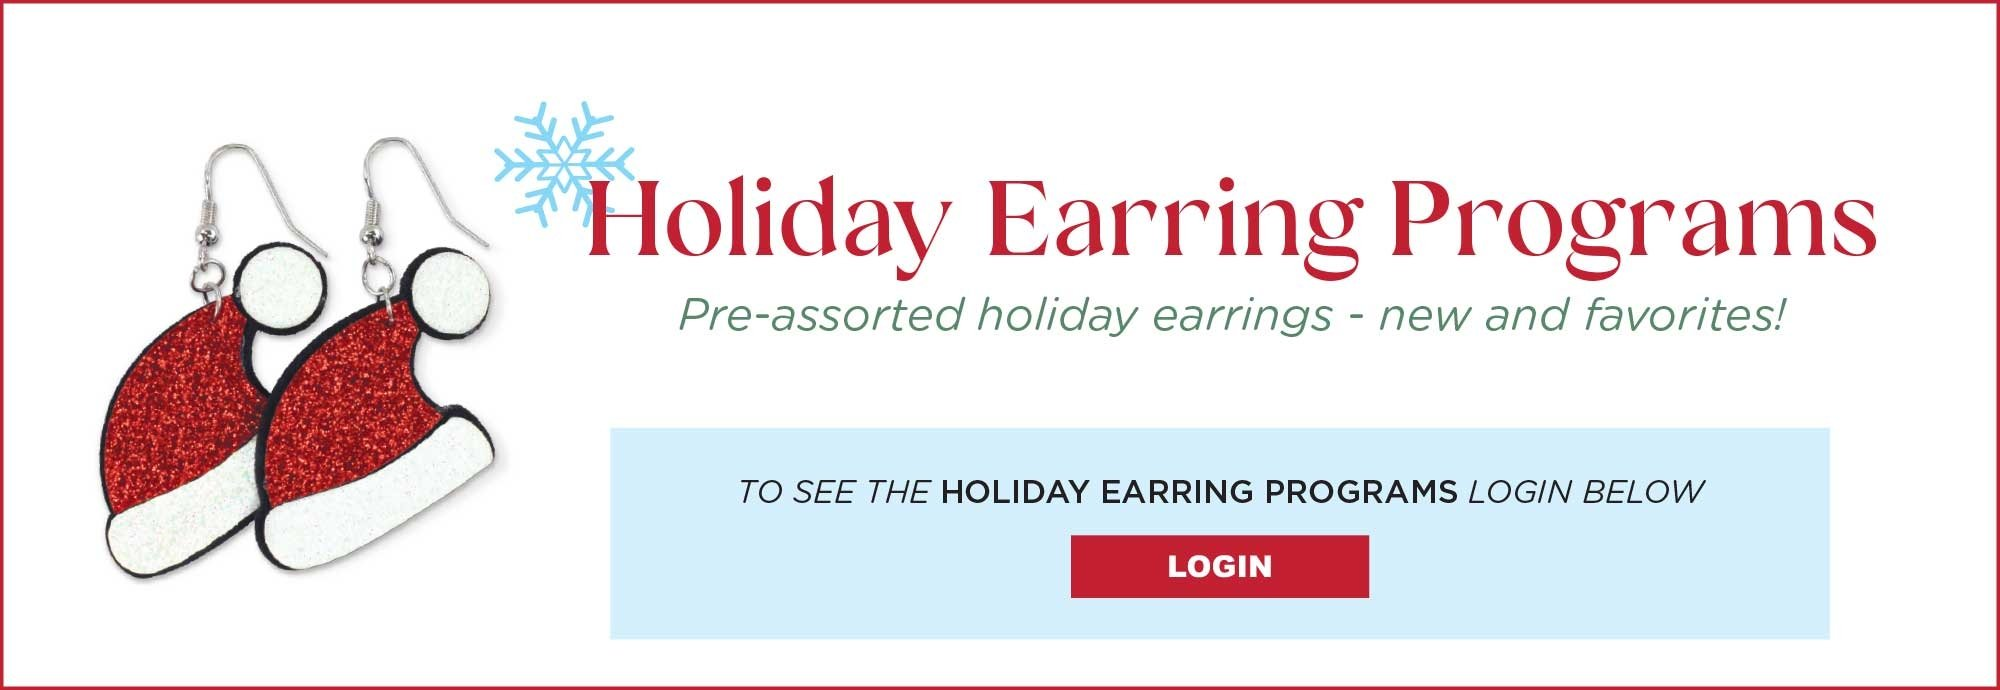 HOLIDAY EARRING PROGRAMS